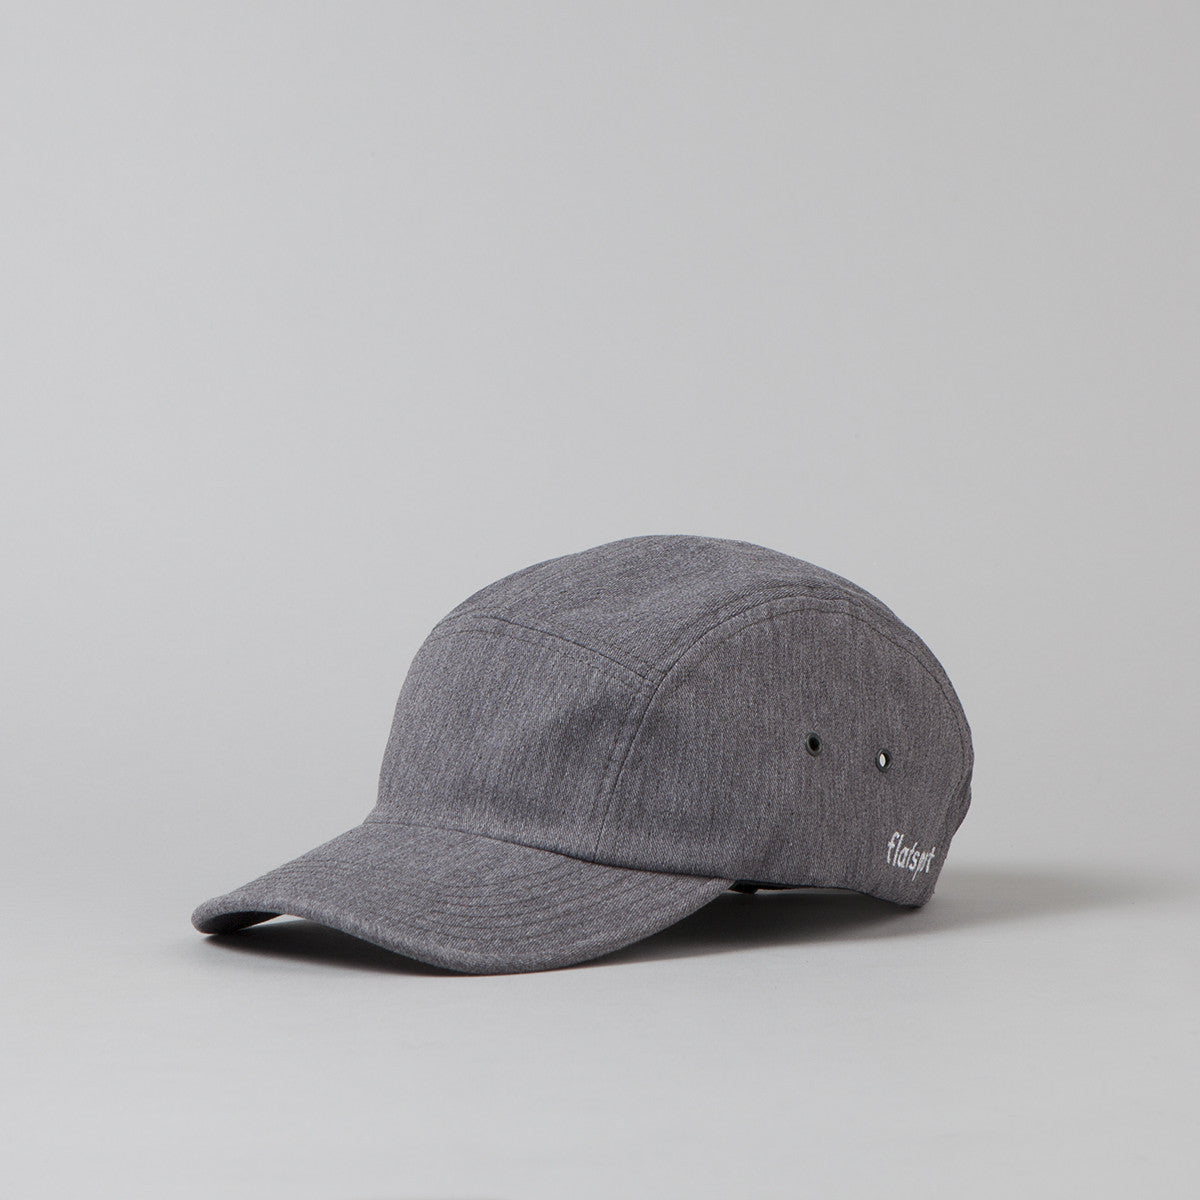 Flatspot Jockey Cap - Heather Grey